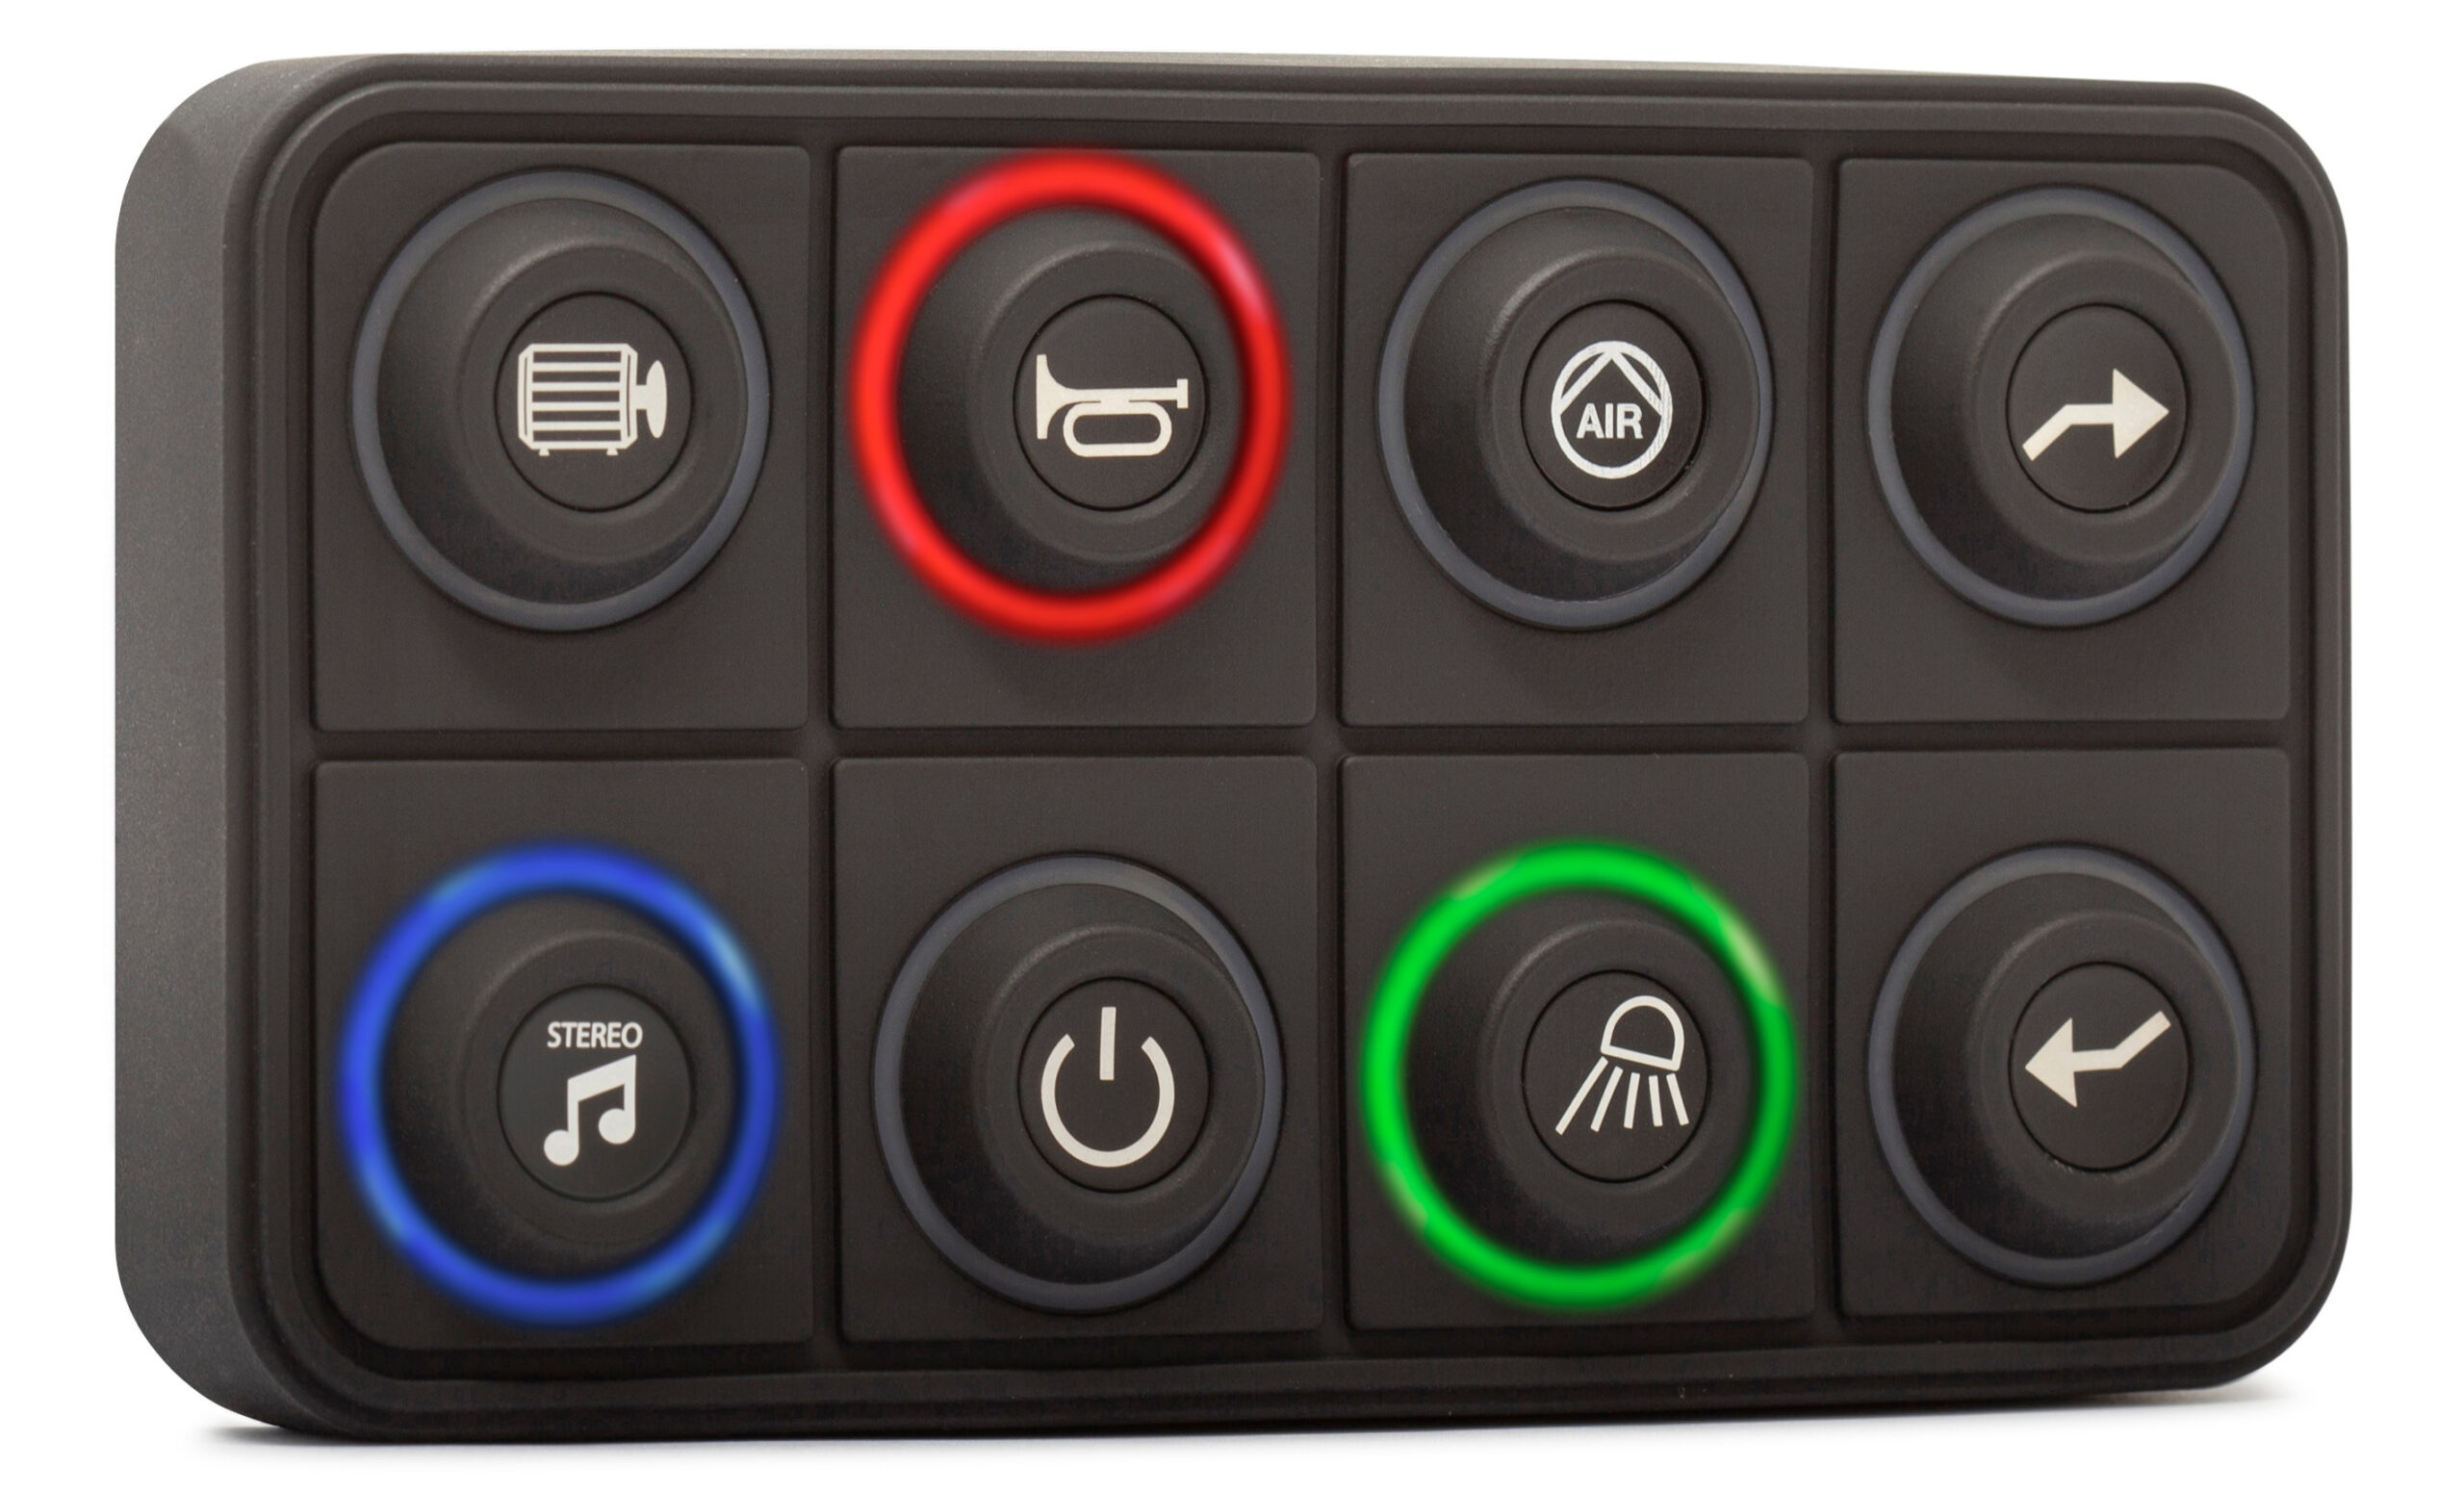 8 button CANBUS keypad